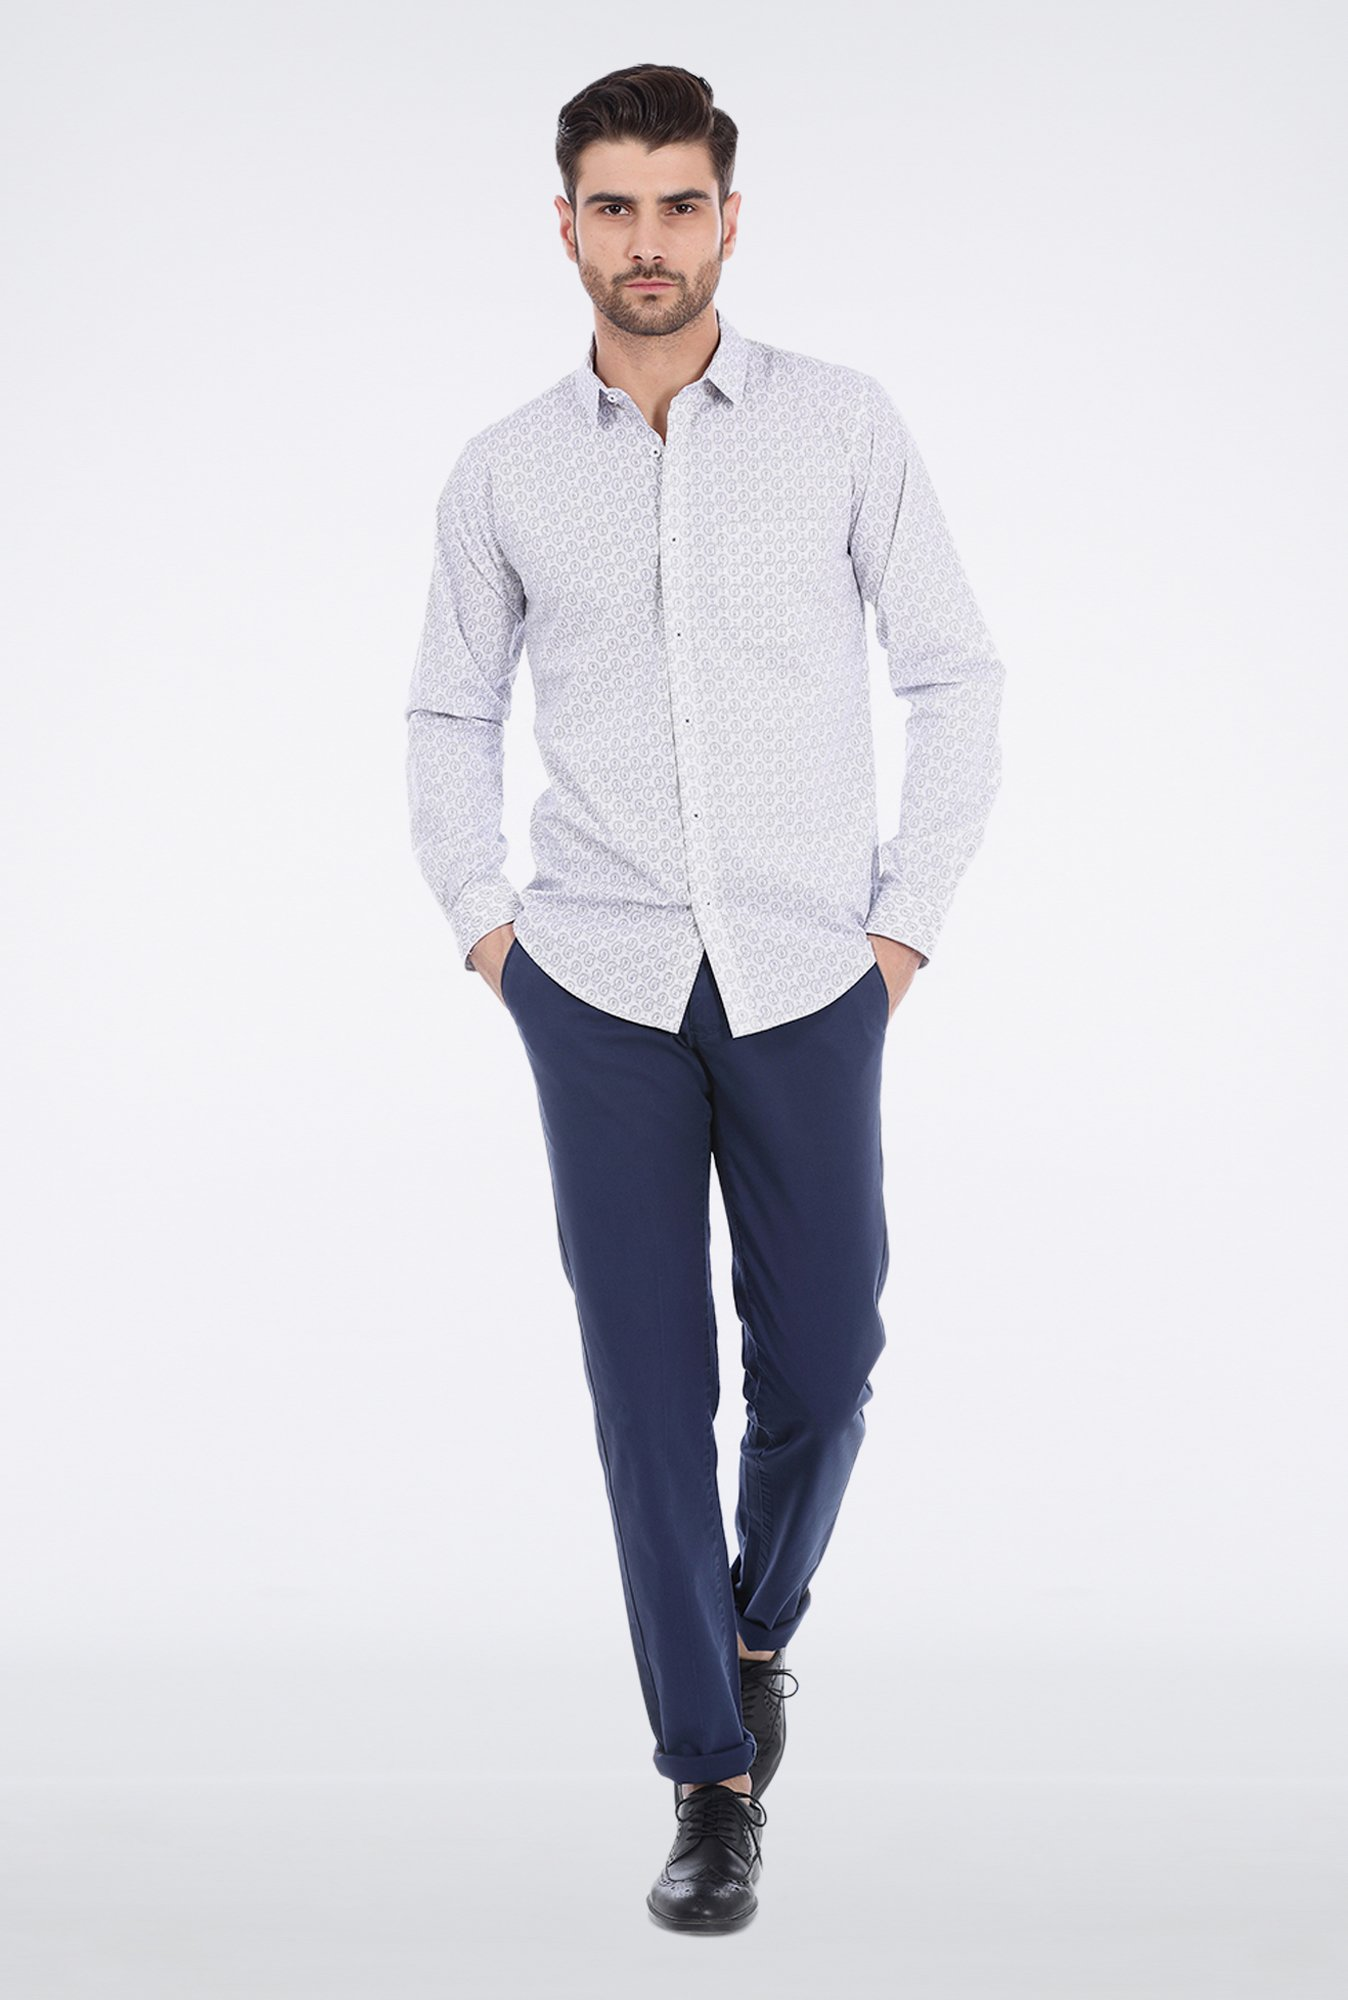 Basics Grey Paisley Printed Formal Shirt